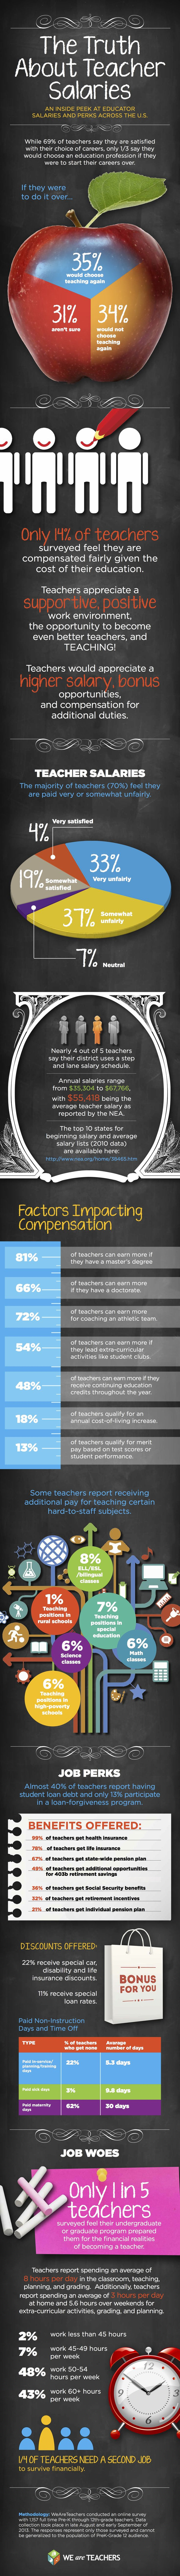 So sad, but true... If everyone wants better teachers, maybe they should get paid more for their efforts!!!